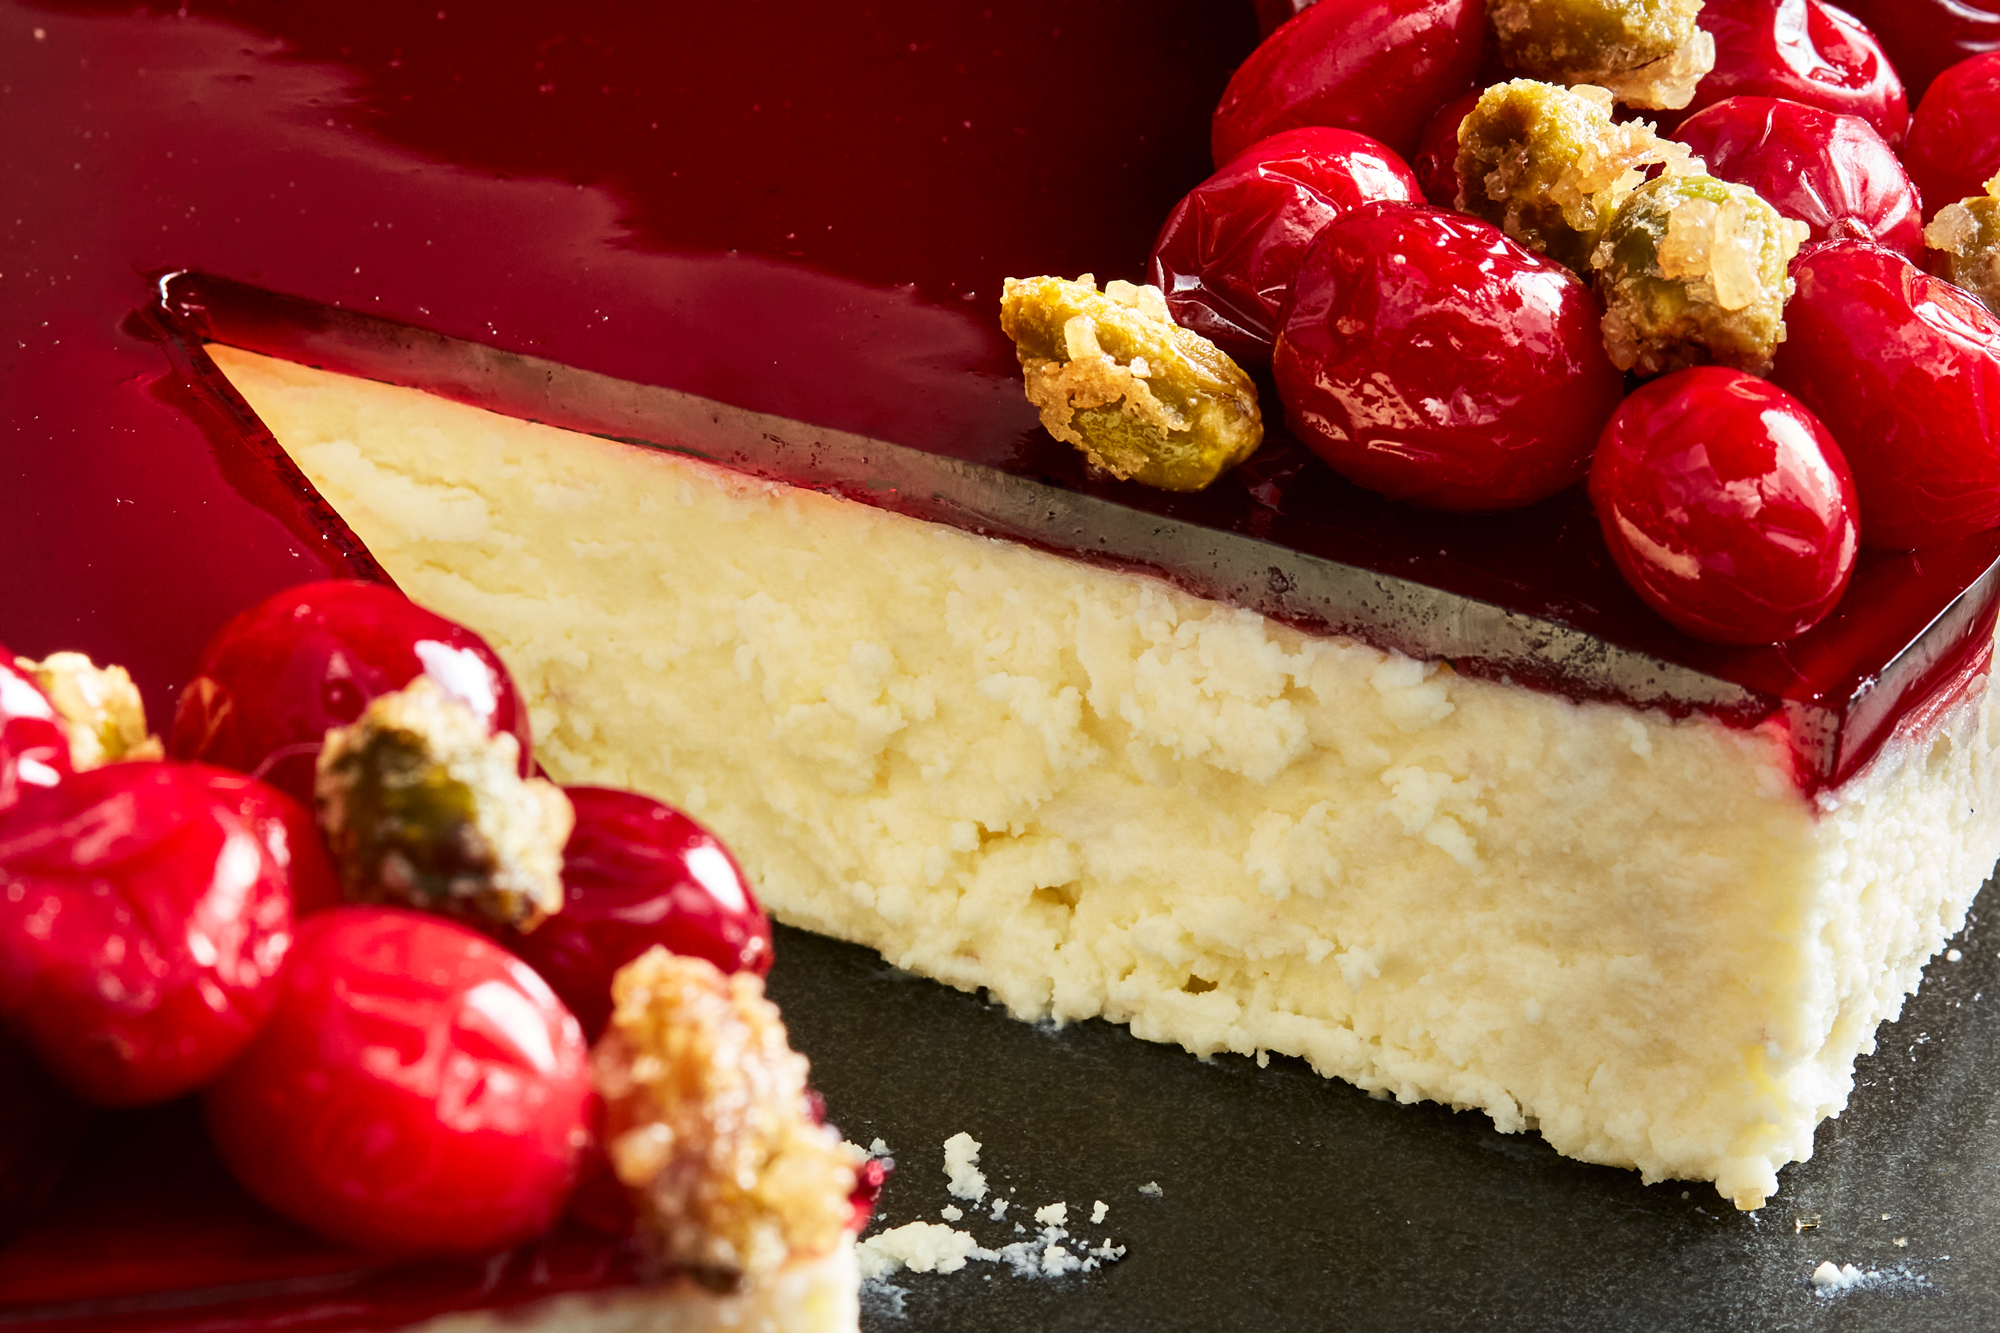 Goat Cheese Cake with Wine-Poached Cranberries